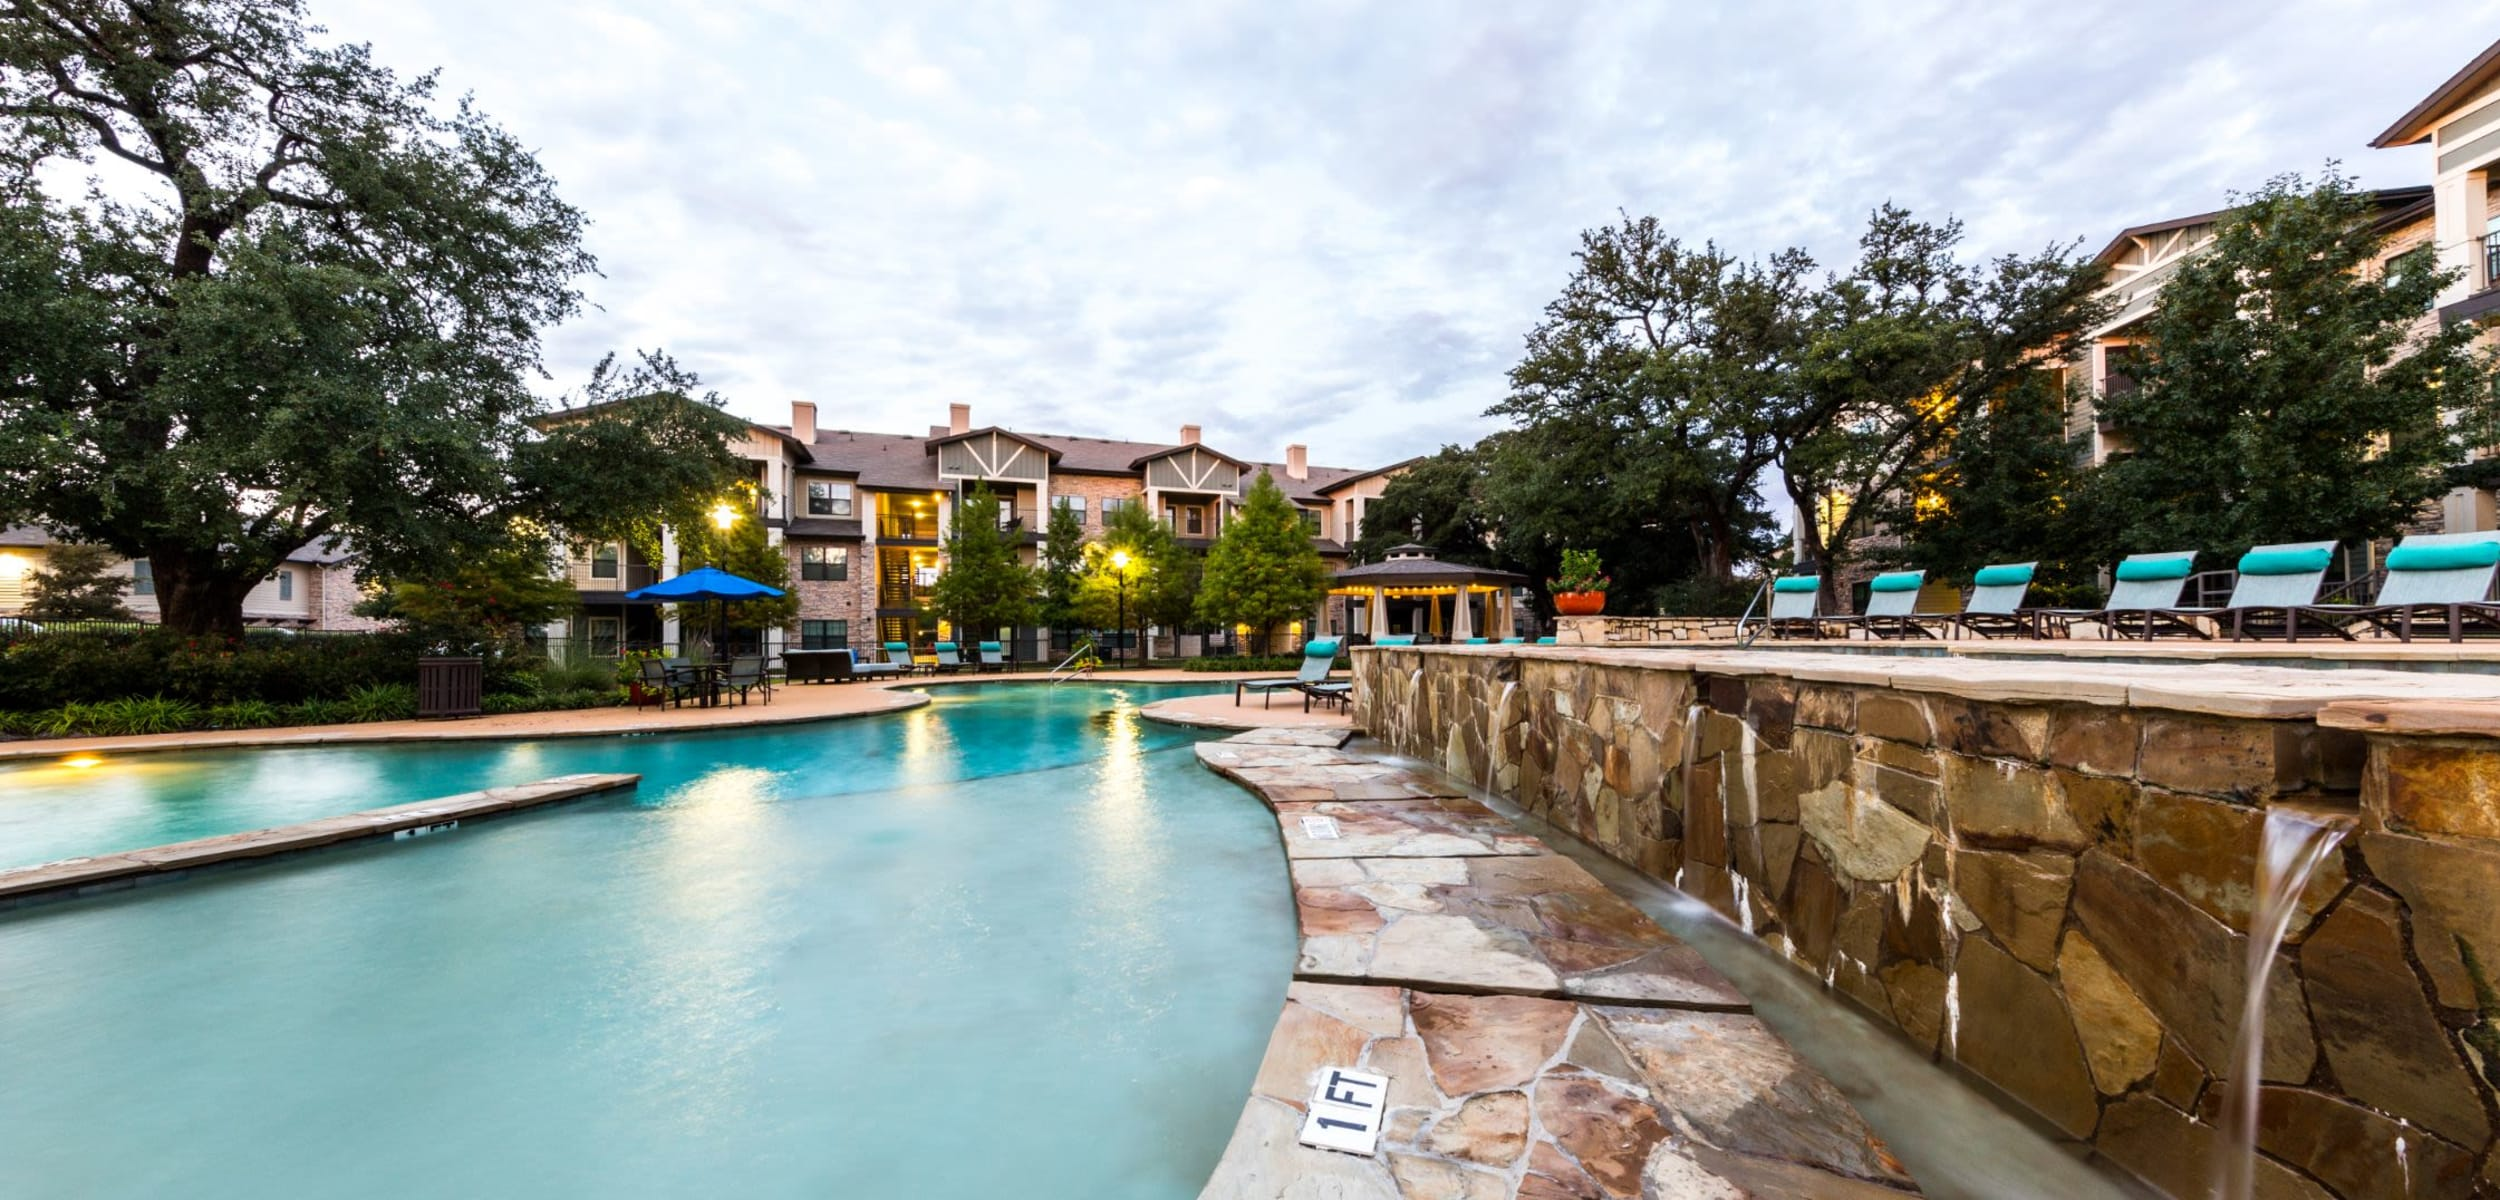 Lit pool with a water feature at Marquis on Lakeline in Cedar Park, Texas